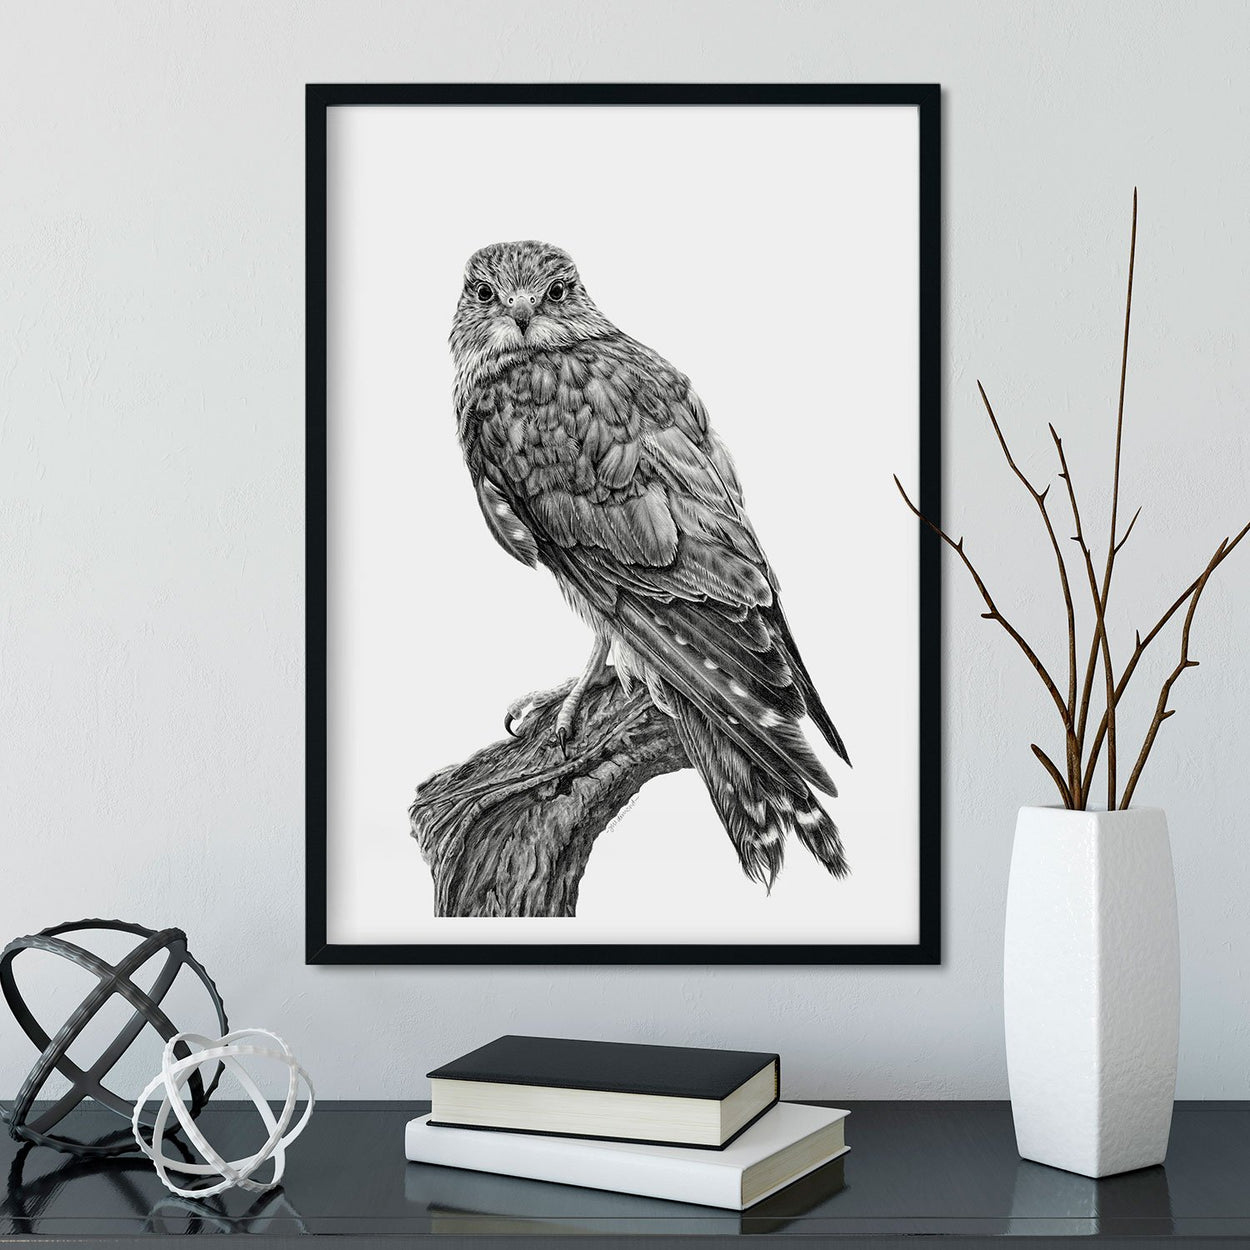 Merlin Wall Art Framed - The Thriving Wild